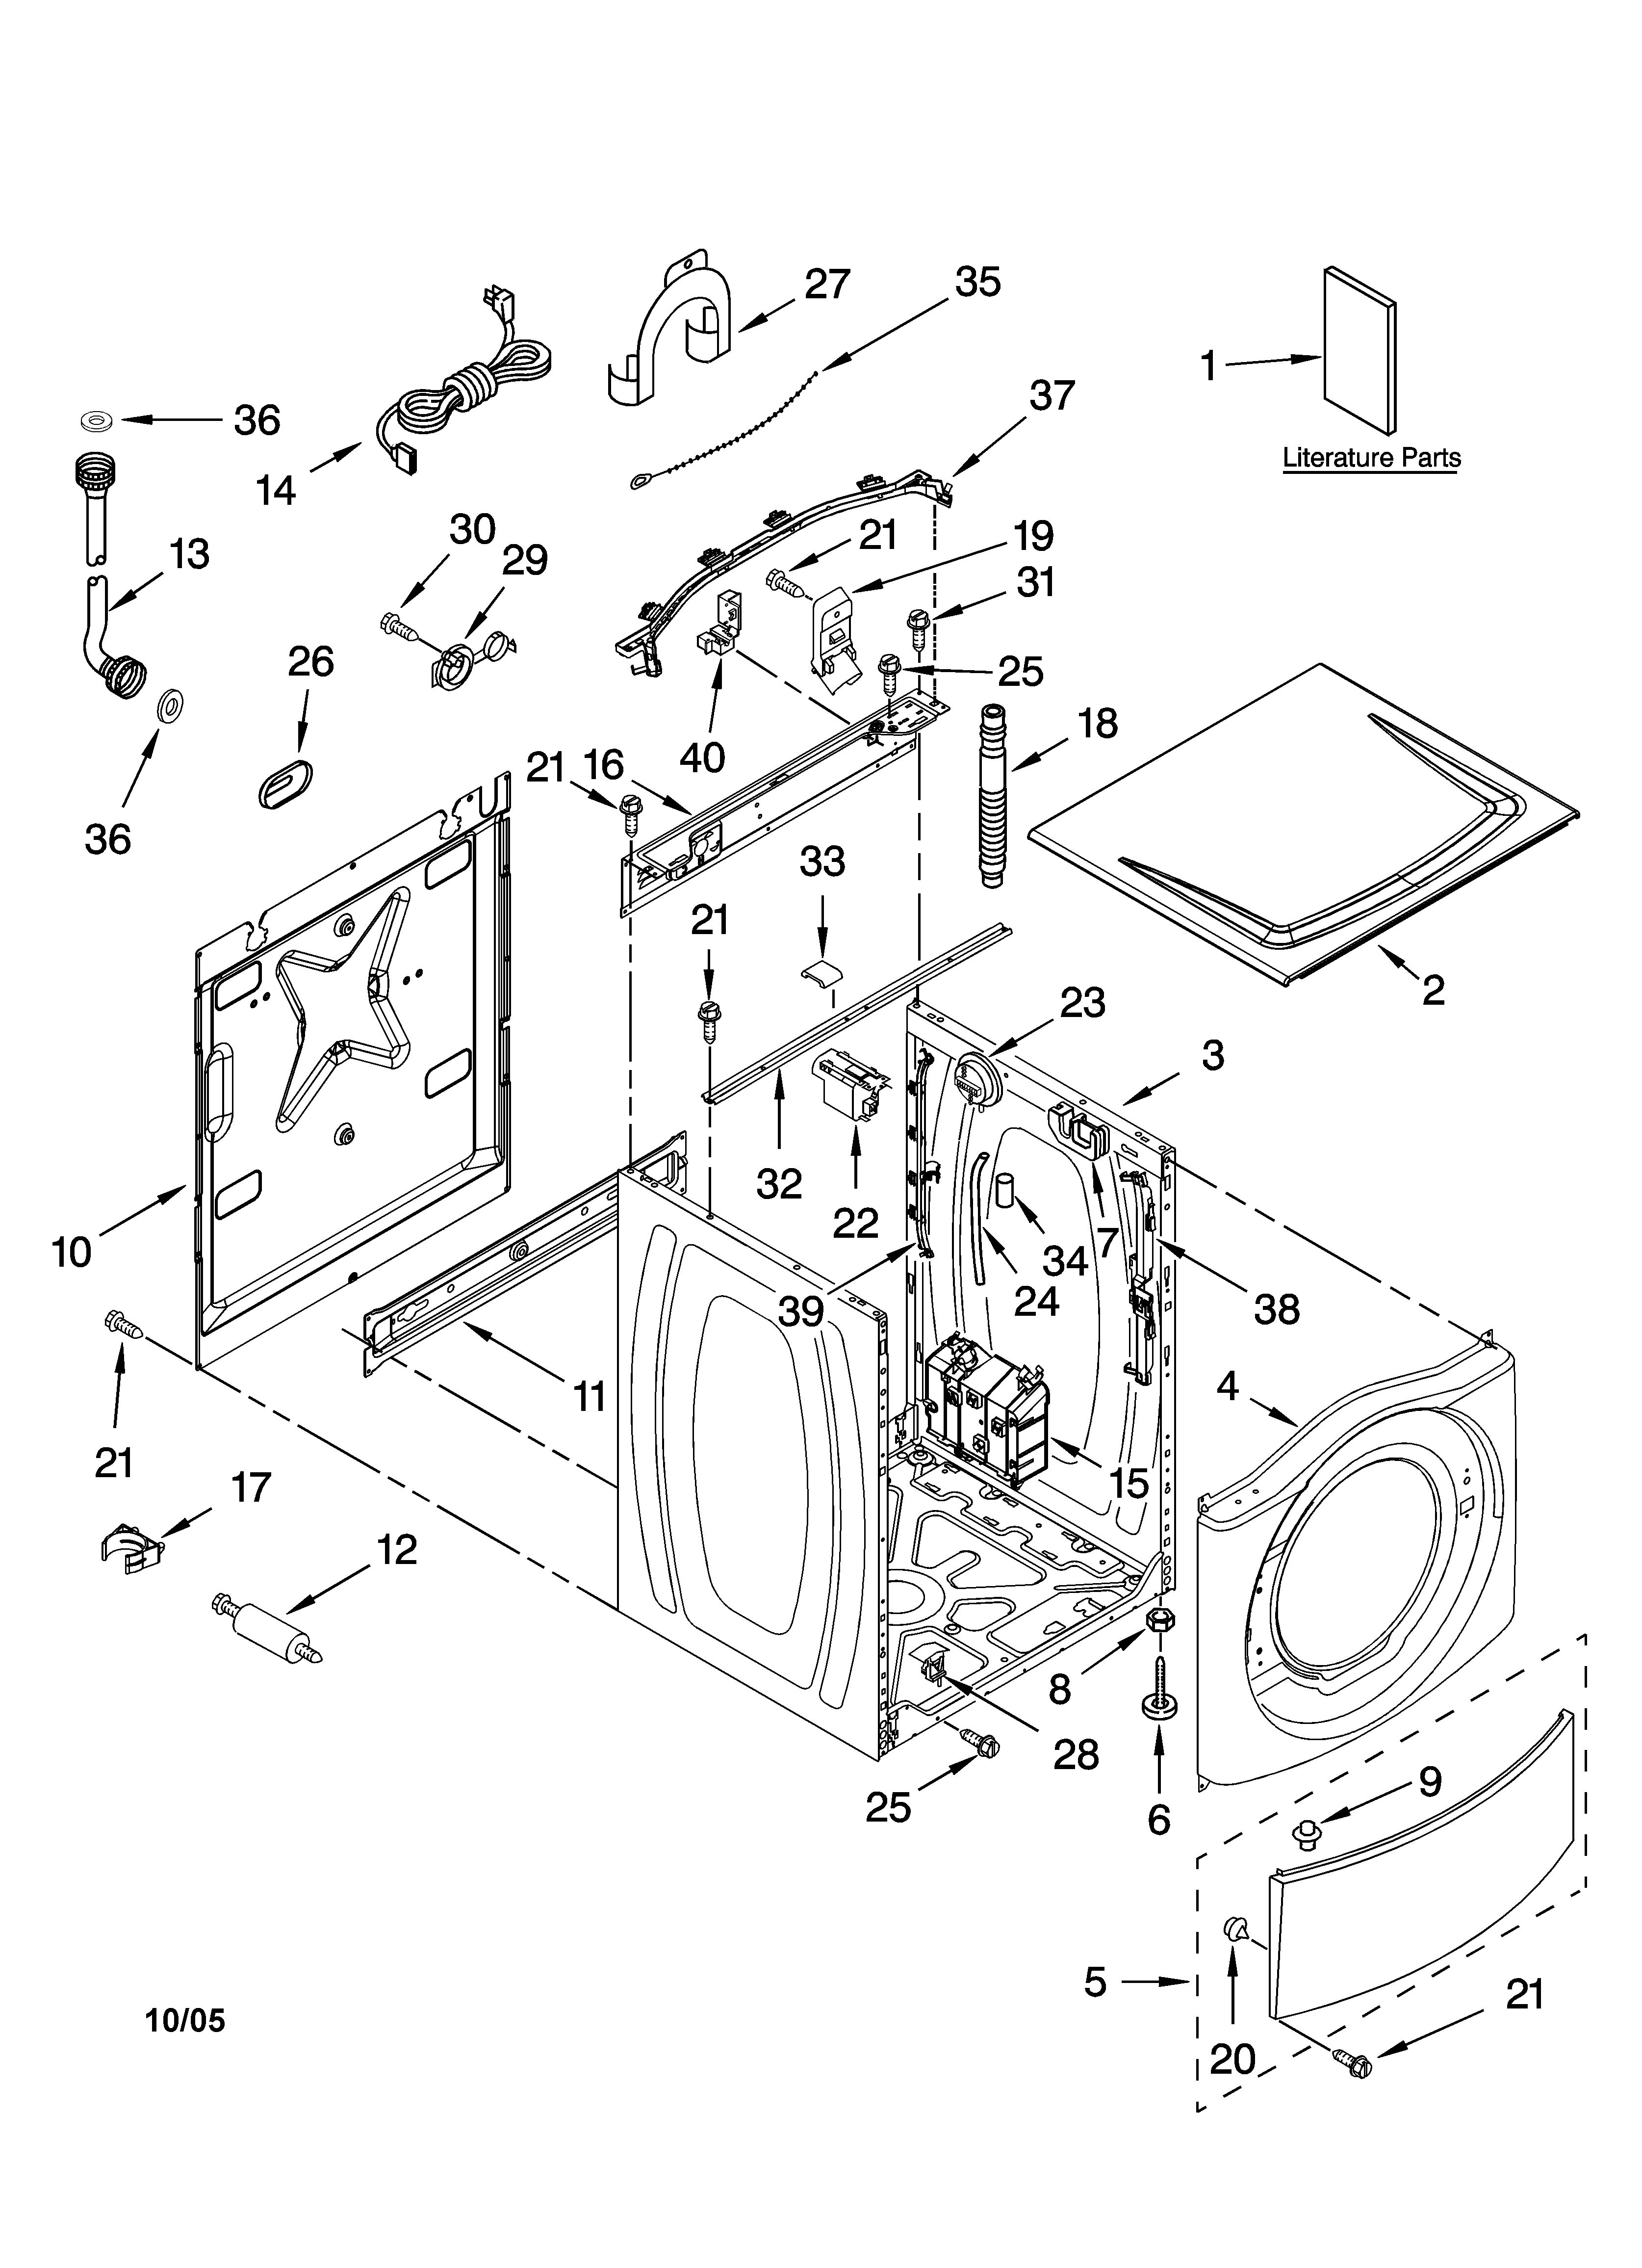 Kenmore washer parts model 11046462500 sears partsdirect kenmore 90 series dryer parts diagram kenmore 90 series parts list kenmore 80 series washer parts